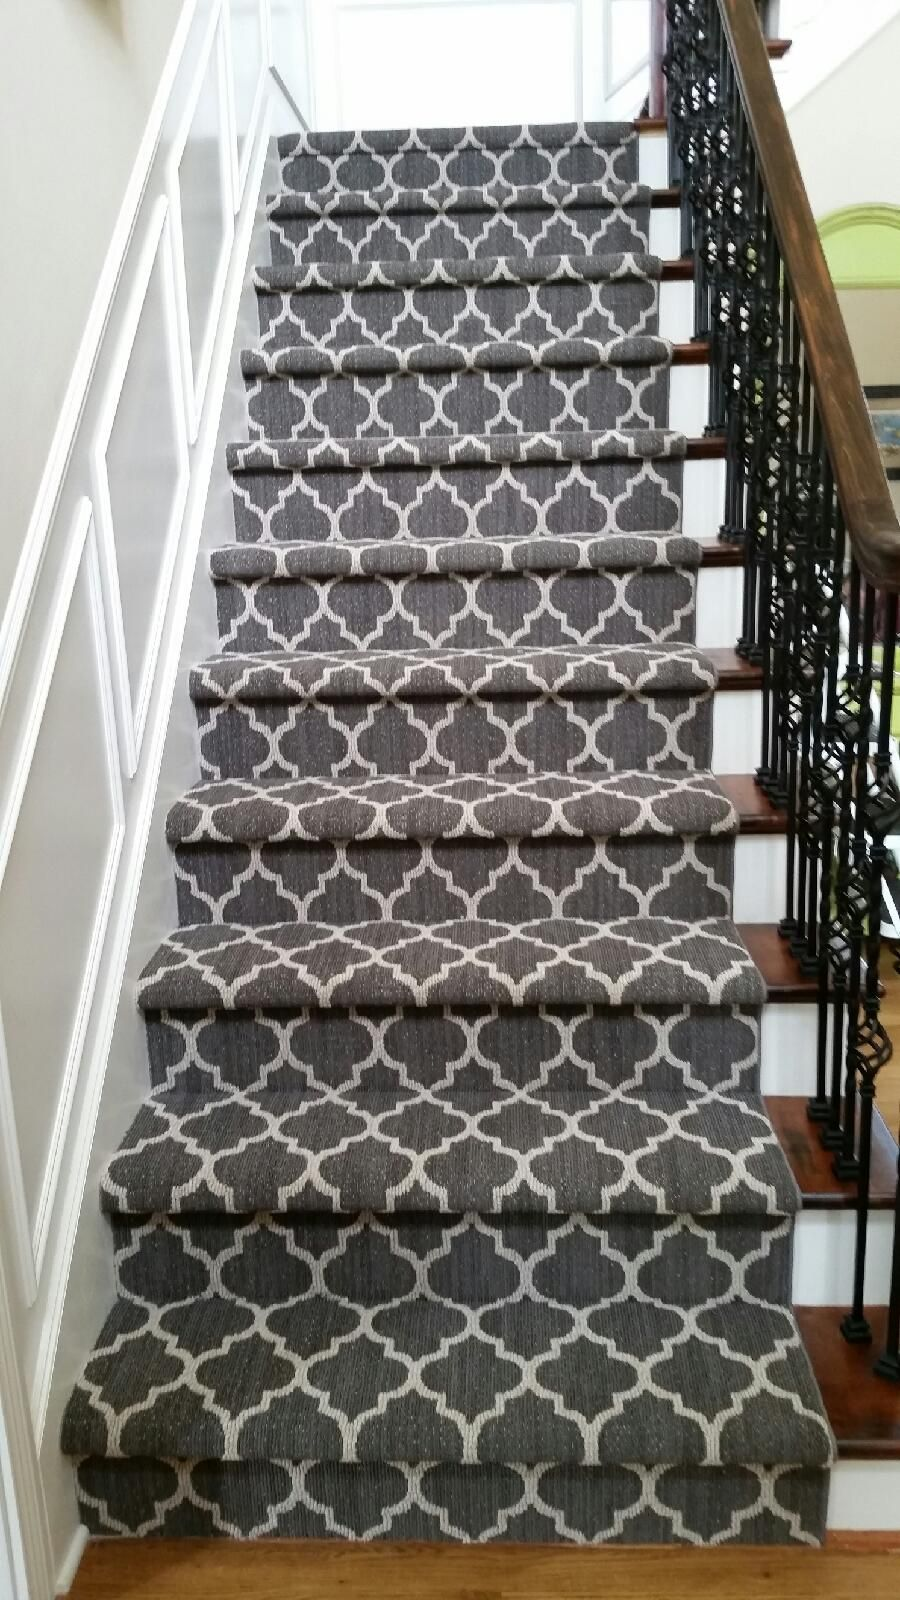 Patterned Carpets Are Luxurious Dramatic And Stylish | Grey Patterned Stair Carpet | Teal | Black | Farmhouse Style | Stair Landing | Wall